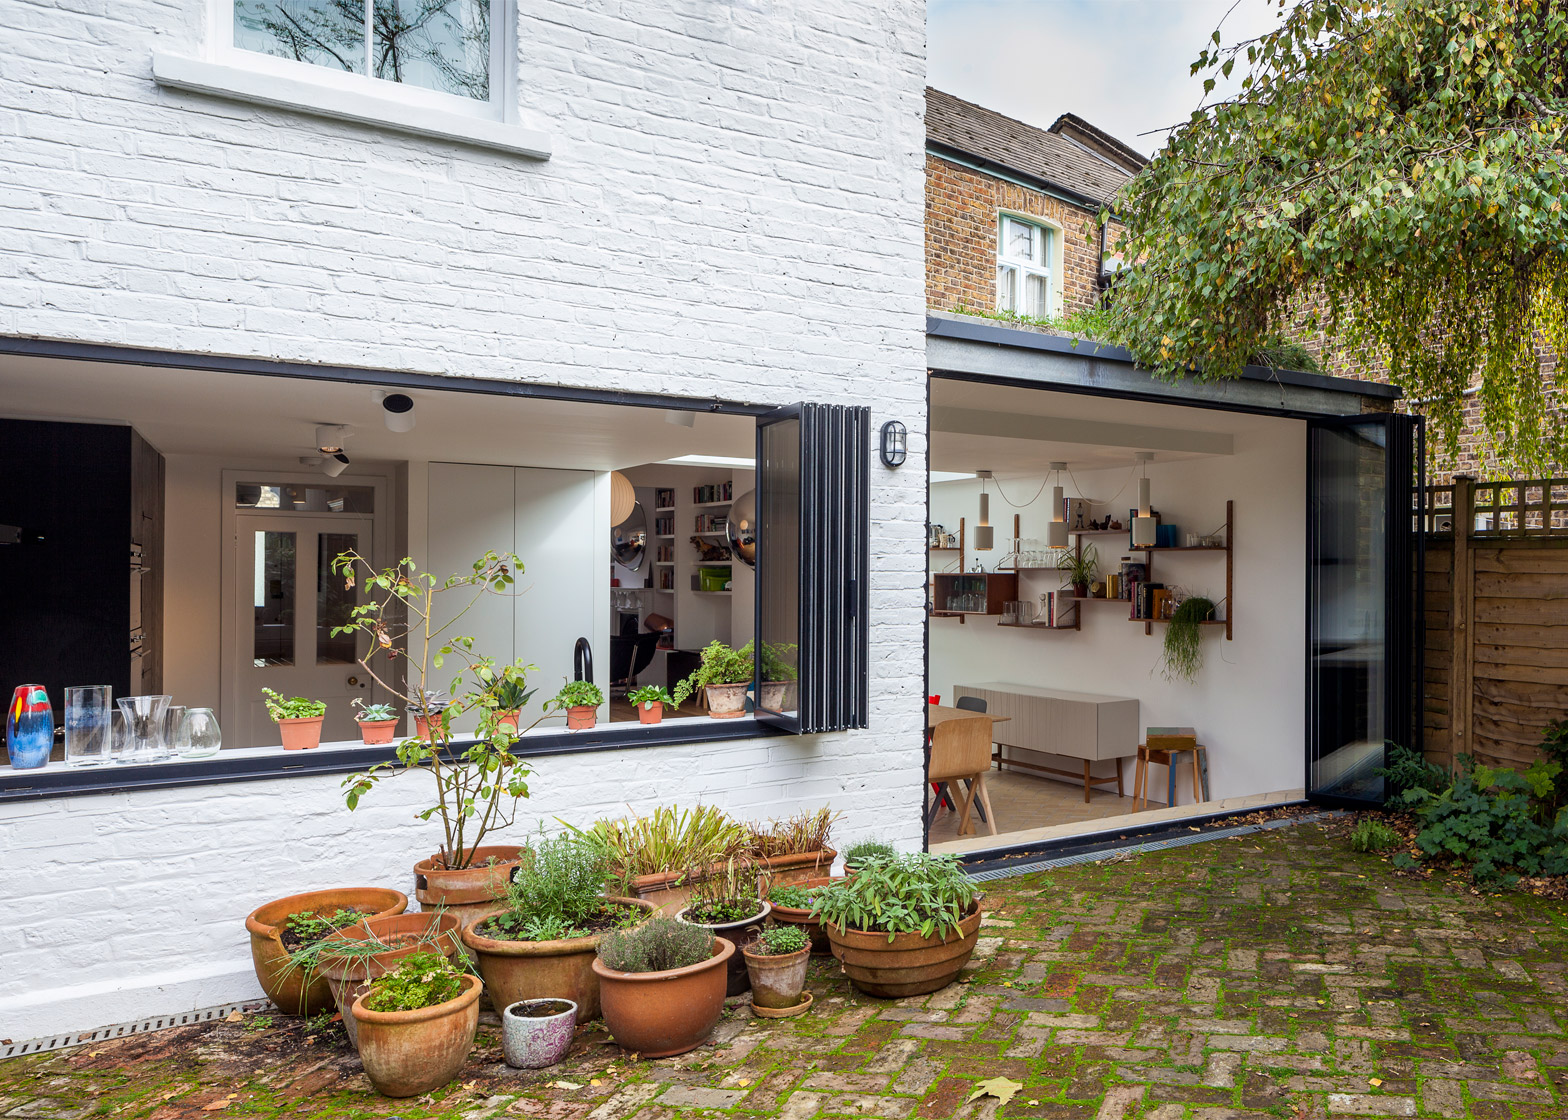 Third place: Shepherd's Bush extension by Studio 30 Architects